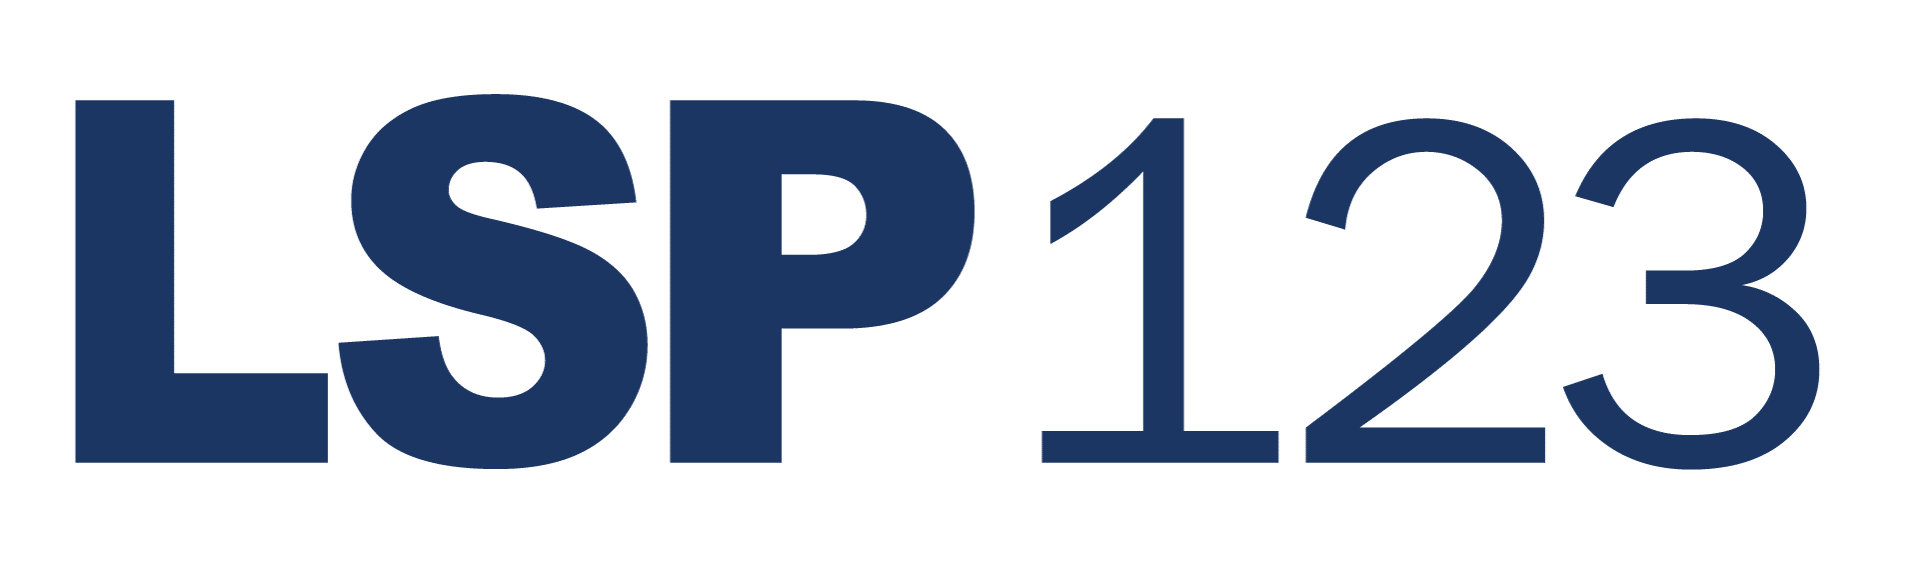 LSP123 Leadership, Strategy, Process - business & leadership coaching